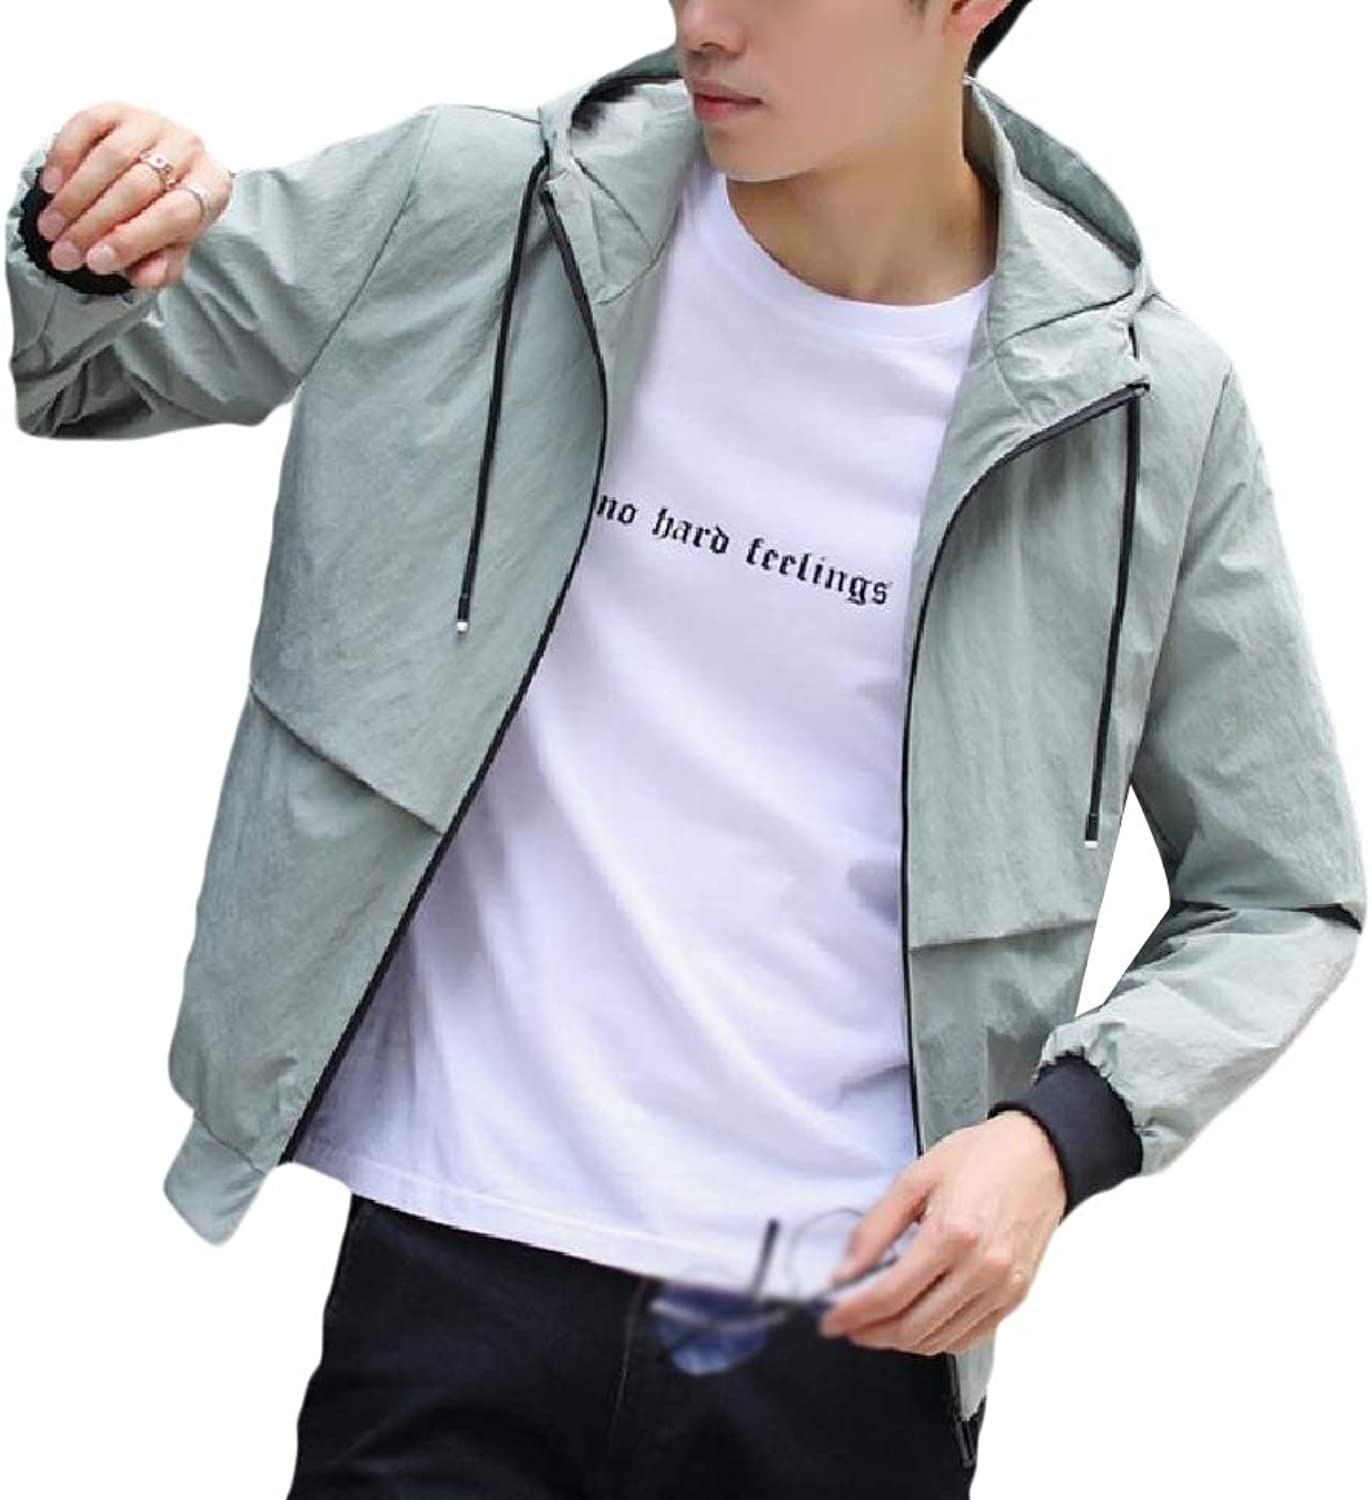 0feef8d80 Winme Winme Winme Men's Slim Wrap Solid color Casual Hooded Autumn ...